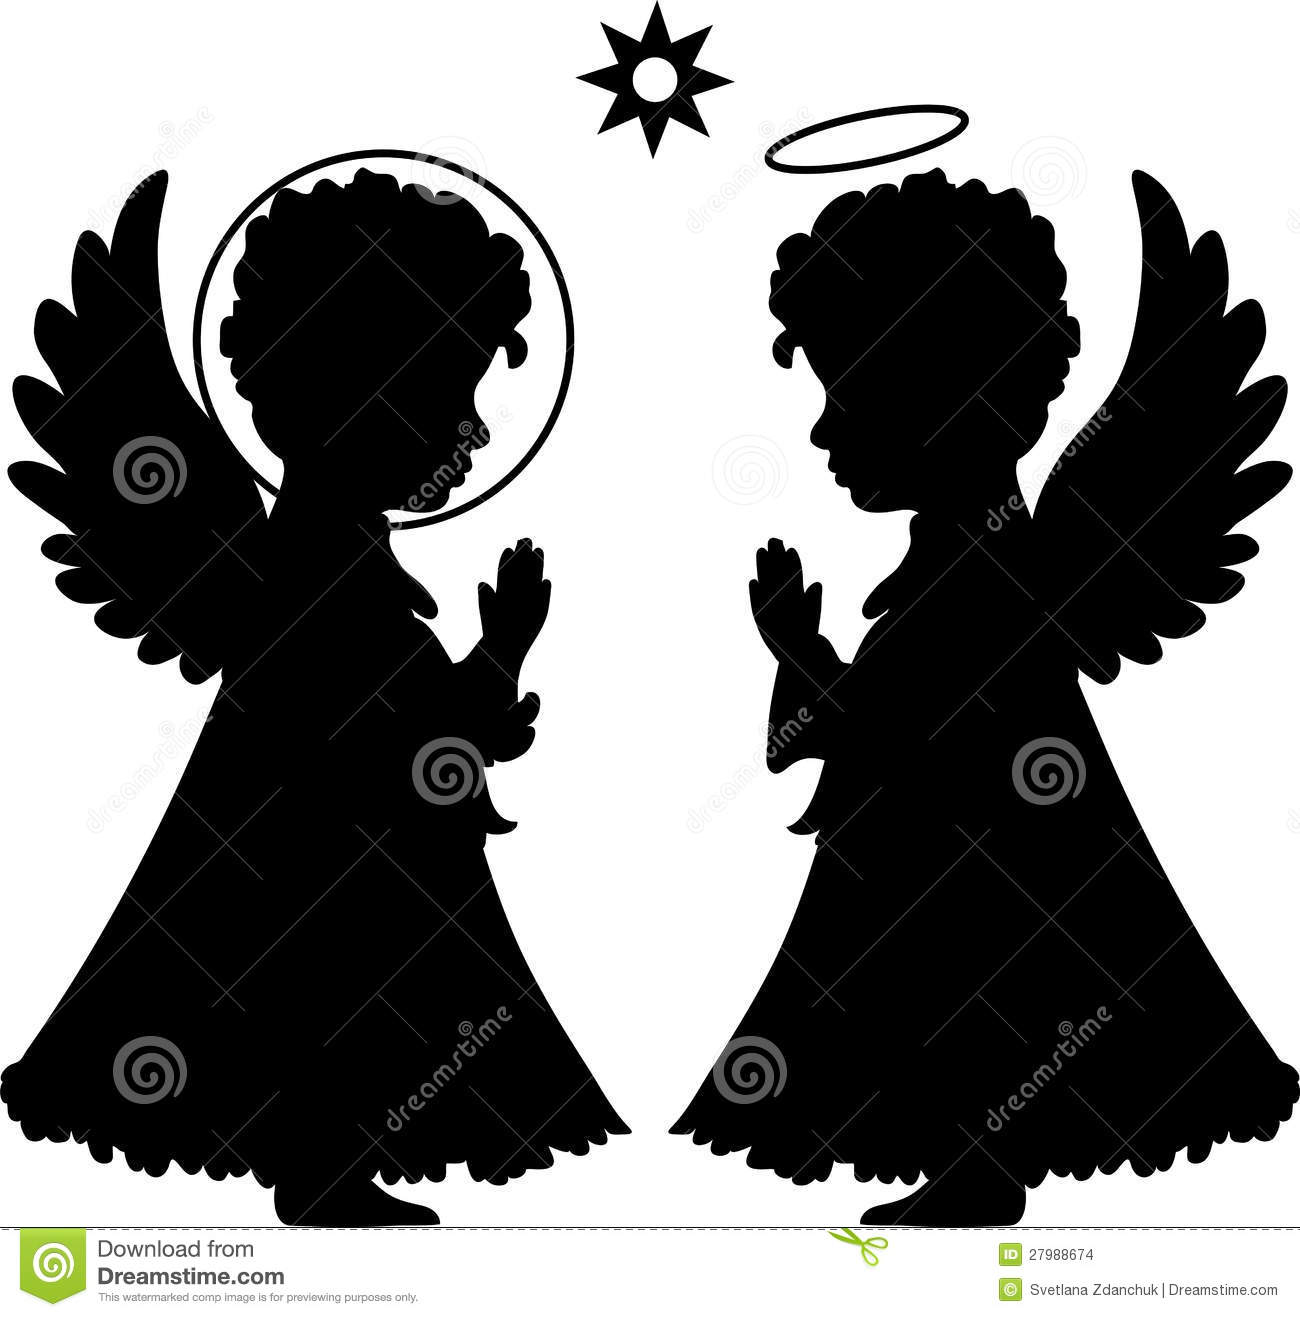 Black and white designs clipart clipart kid - Cute Angels Silhouettes Set Stock Images Image 27988674